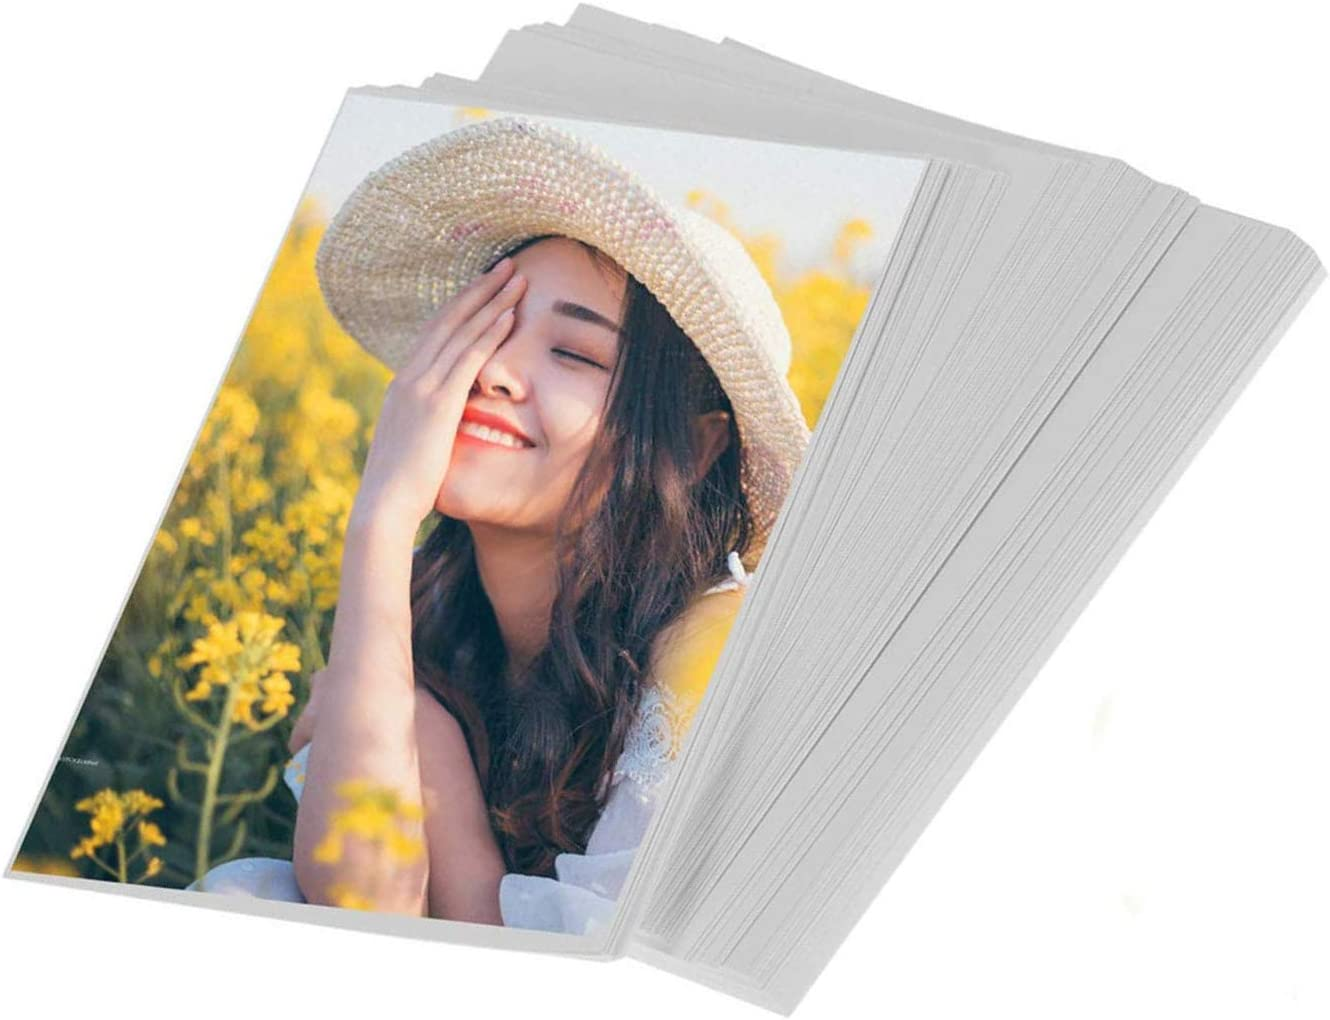 Liwute 4x6 Inches Glossy Photo Paper Both Sides 200gsm For Laser Printer, Laser Printing Paper, 100sheets